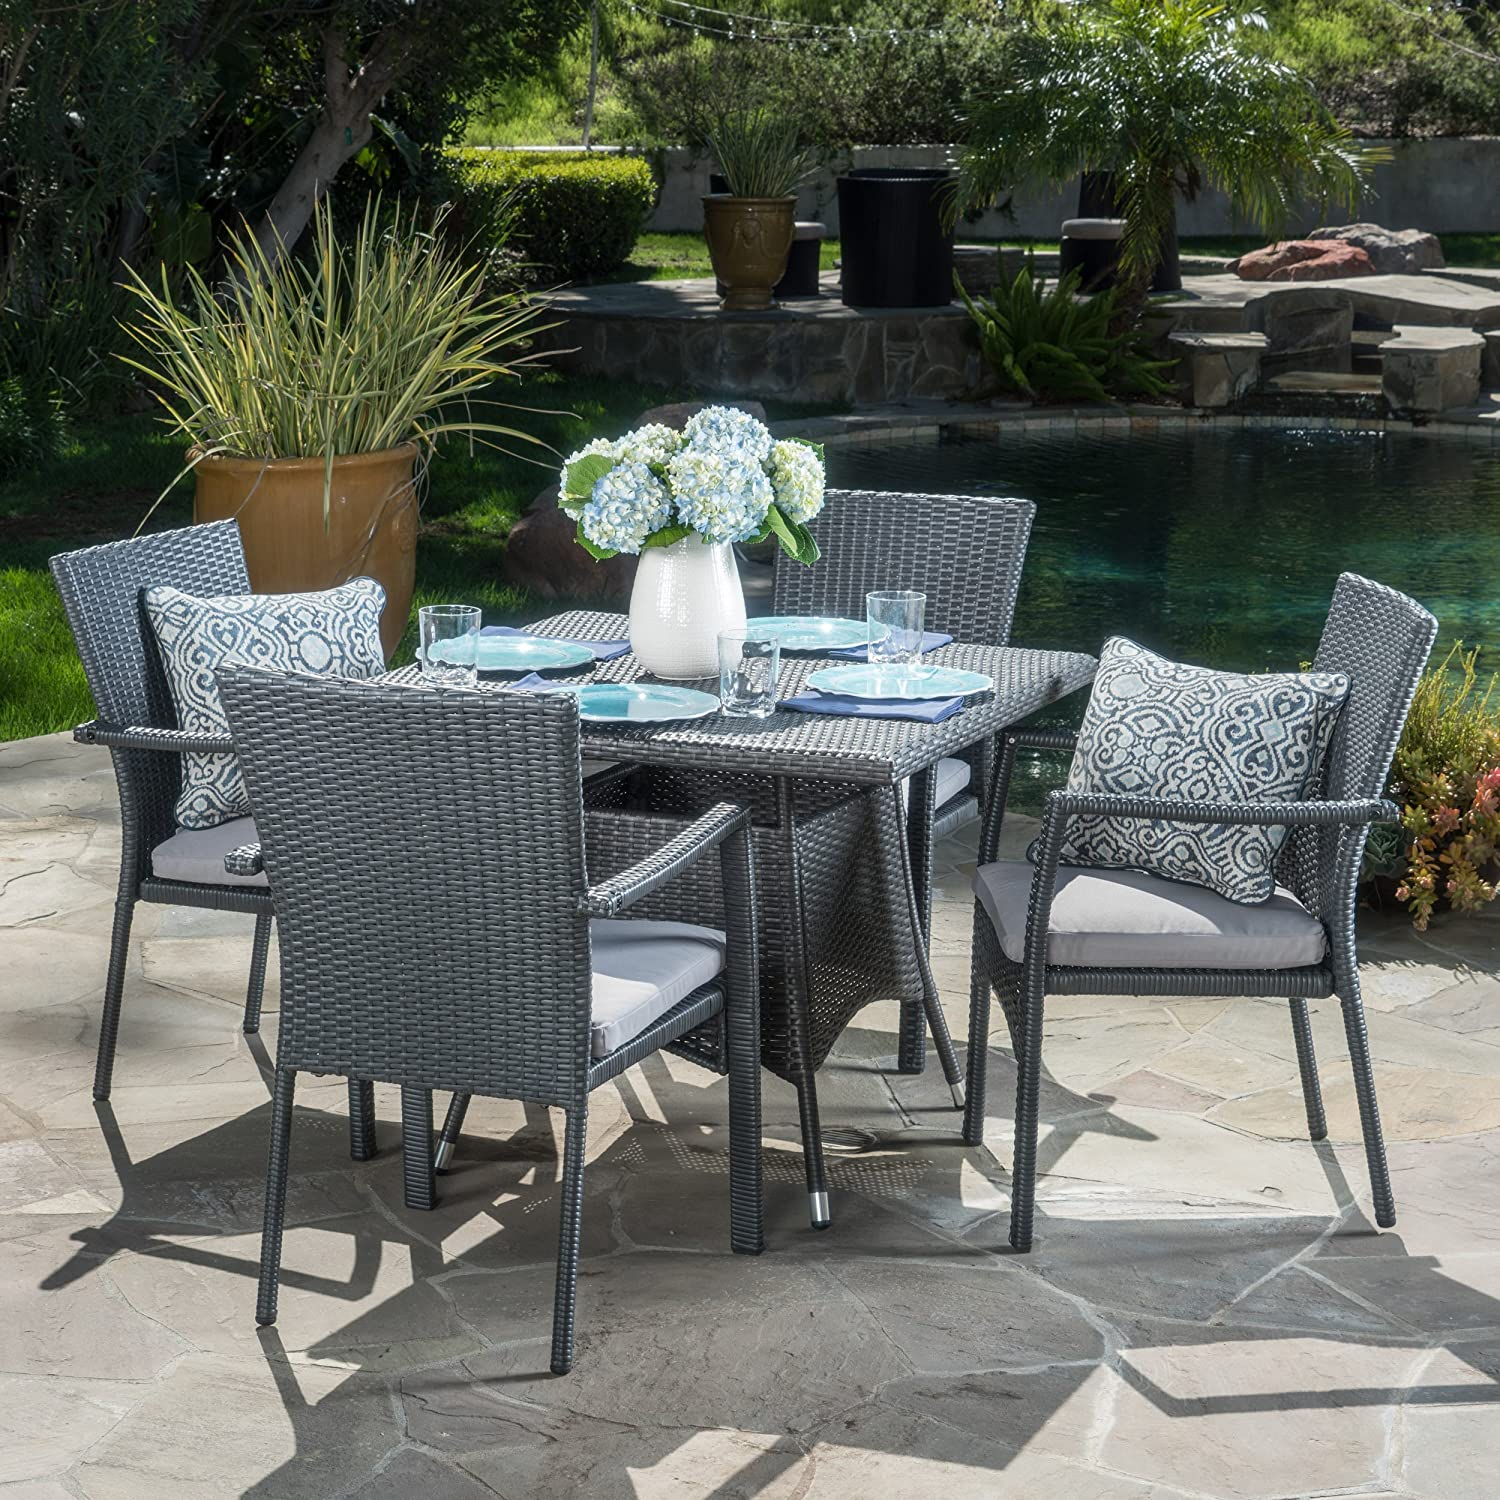 Amazon com cabela 5 piece wicker outdoor dining set with cushions perfect for patio in grey garden outdoor